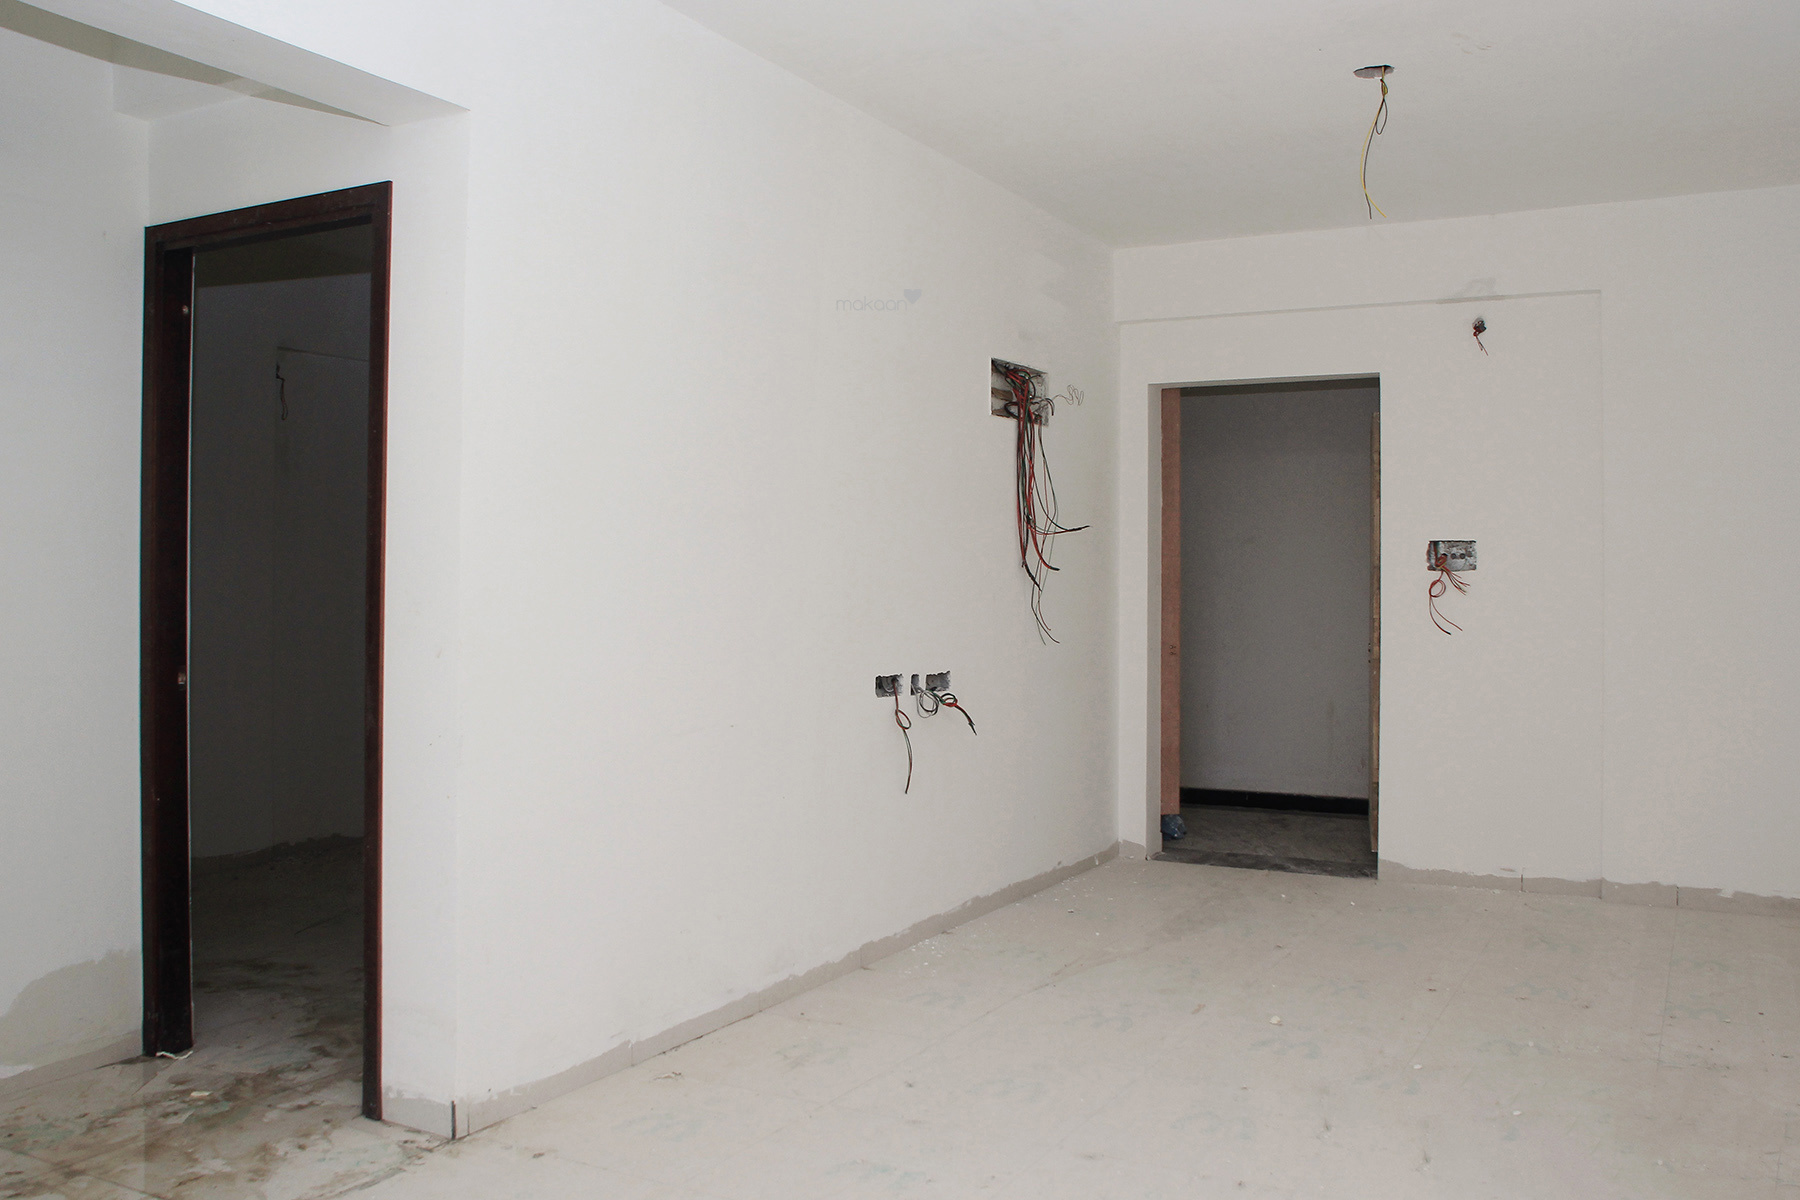 1341 sq ft 2BHK 2BHK+2T (1,341 sq ft) + Study Room Property By Proptiger In Shilpitha Sunflower, Whitefield Hope Farm Junction